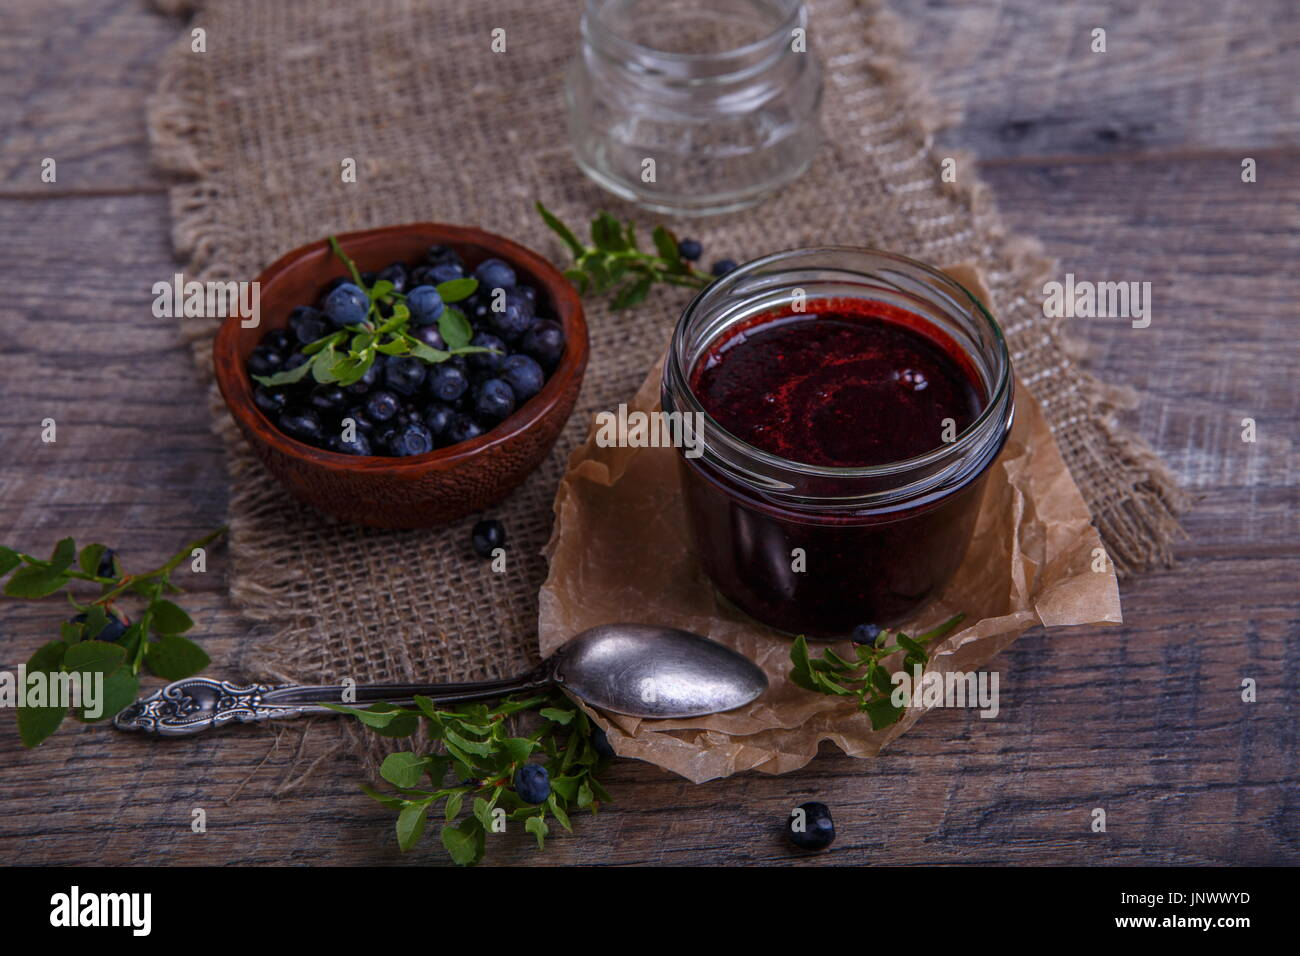 blueberry leaf stockfotos blueberry leaf bilder alamy. Black Bedroom Furniture Sets. Home Design Ideas